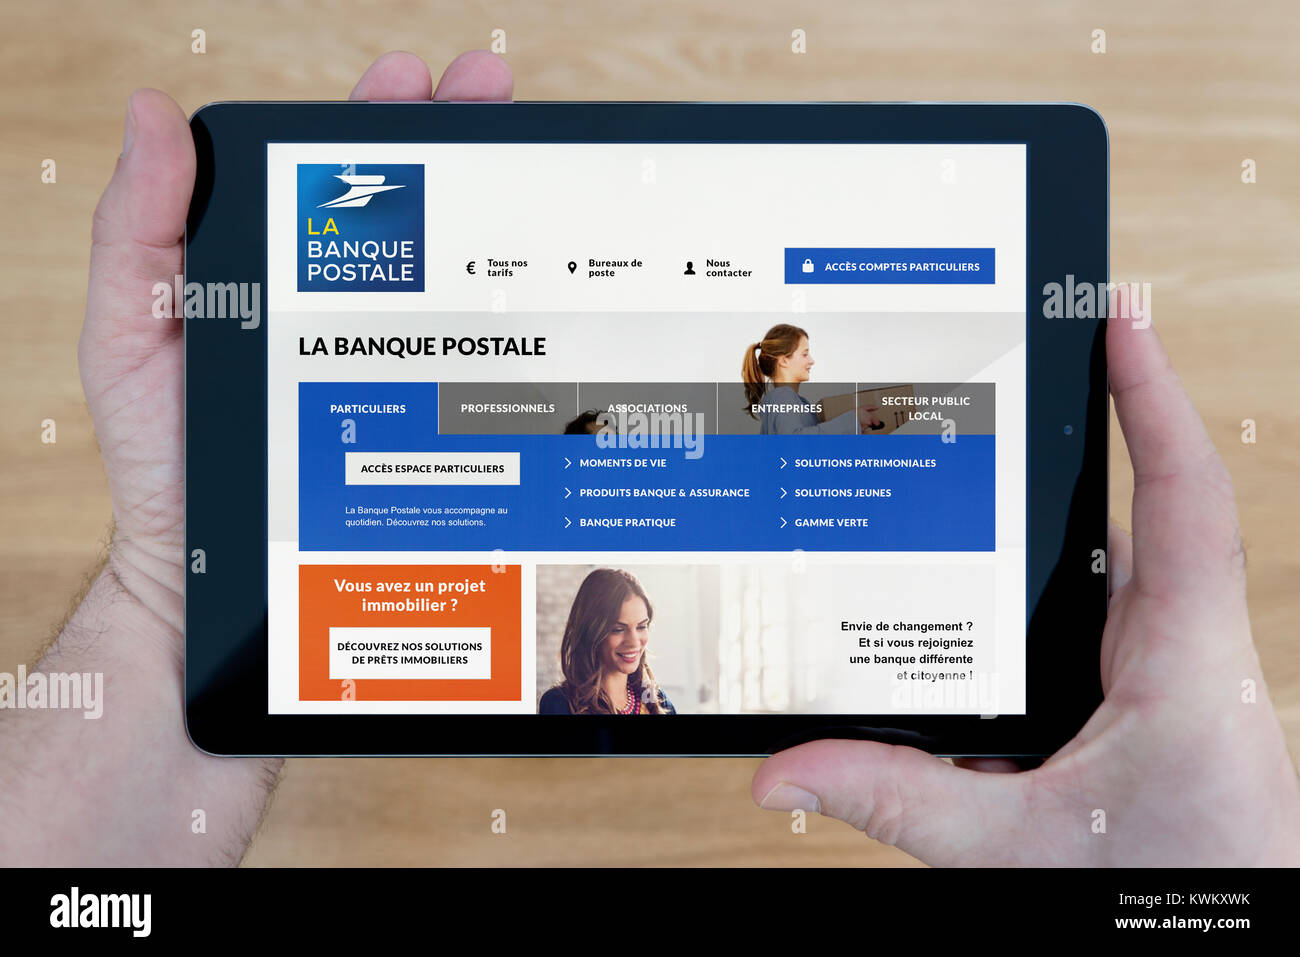 A Man Looks At The La Banque Postale Website On His Ipad Tablet